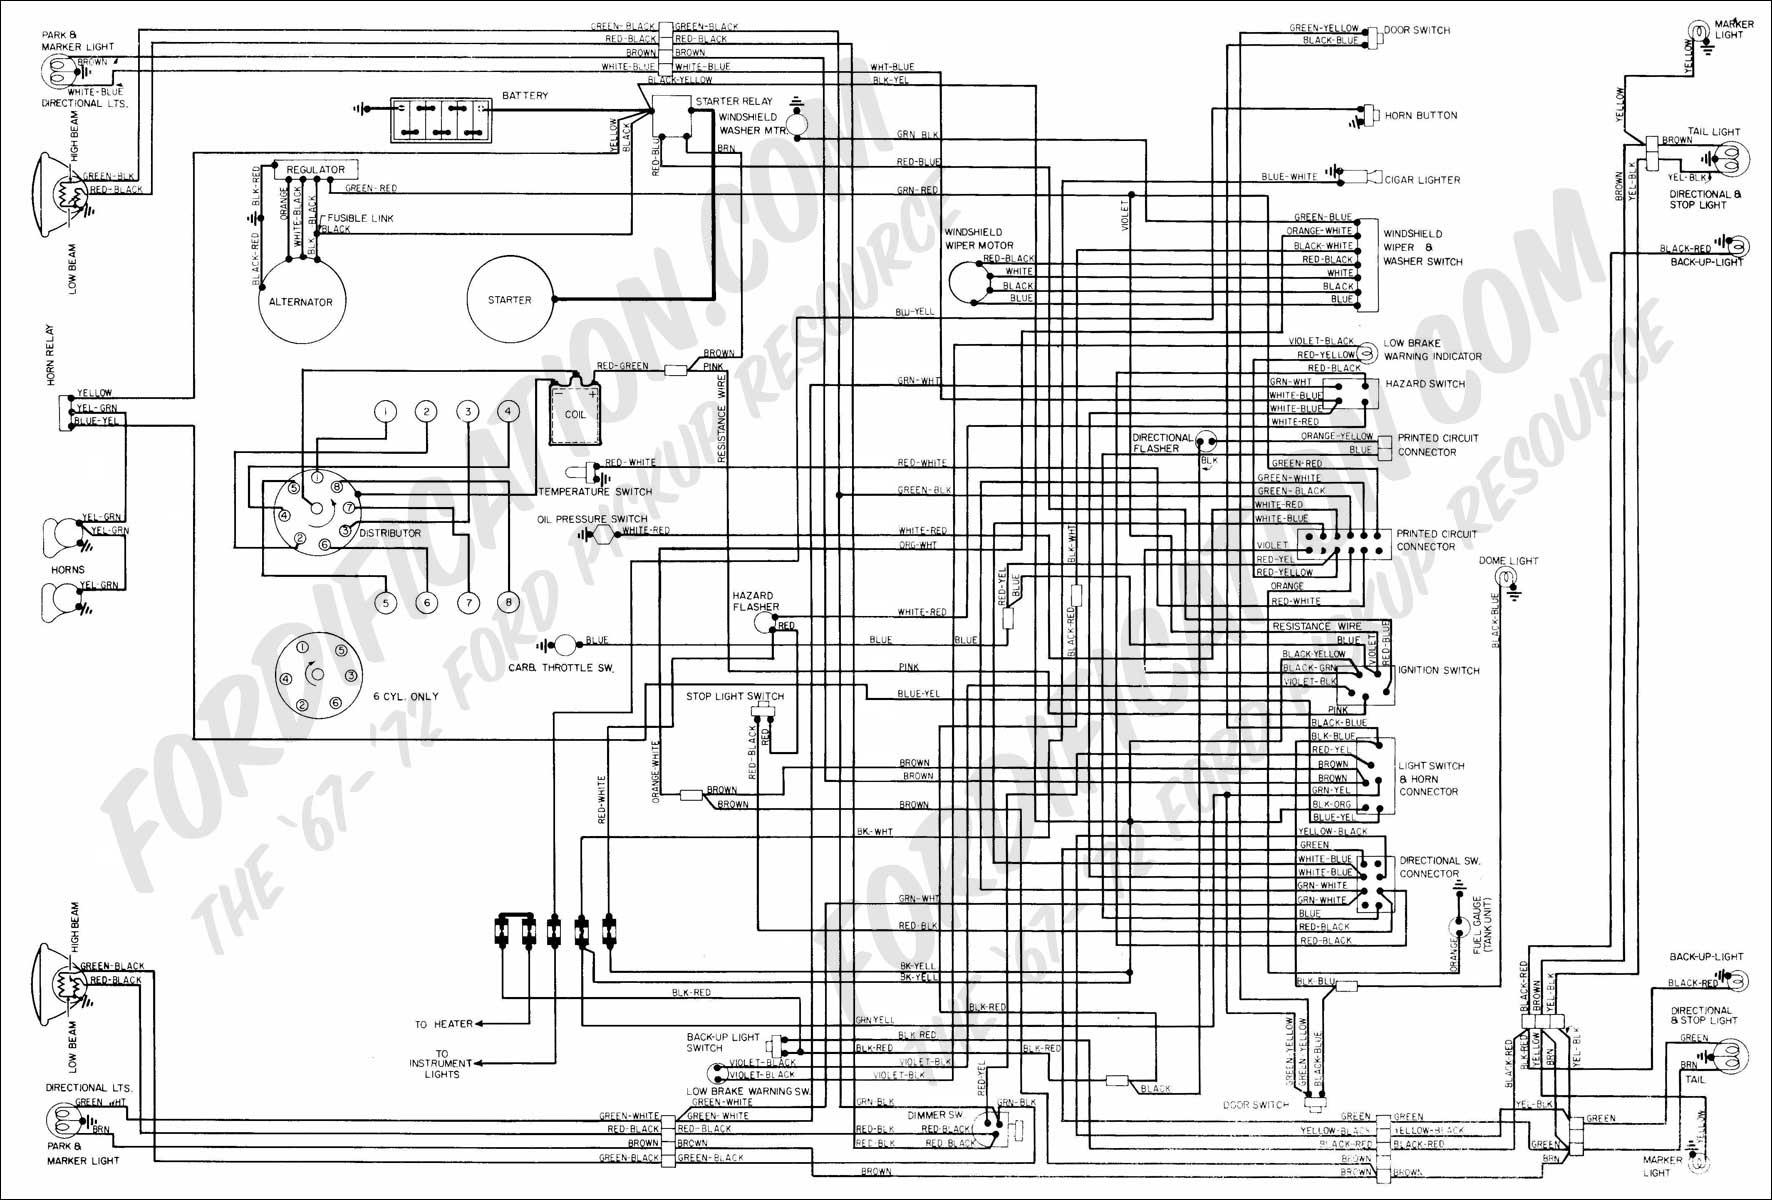 wiring diagram for 1985 ford mustang pdf with Index11 on P 0900c15280045126 also Index11 in addition Grounding Wire Location Help Please 10069 moreover 1967 Mustang Wiring And Vacuum Diagrams likewise 1983 1988 Ford Bronco Ii Start Ignition.